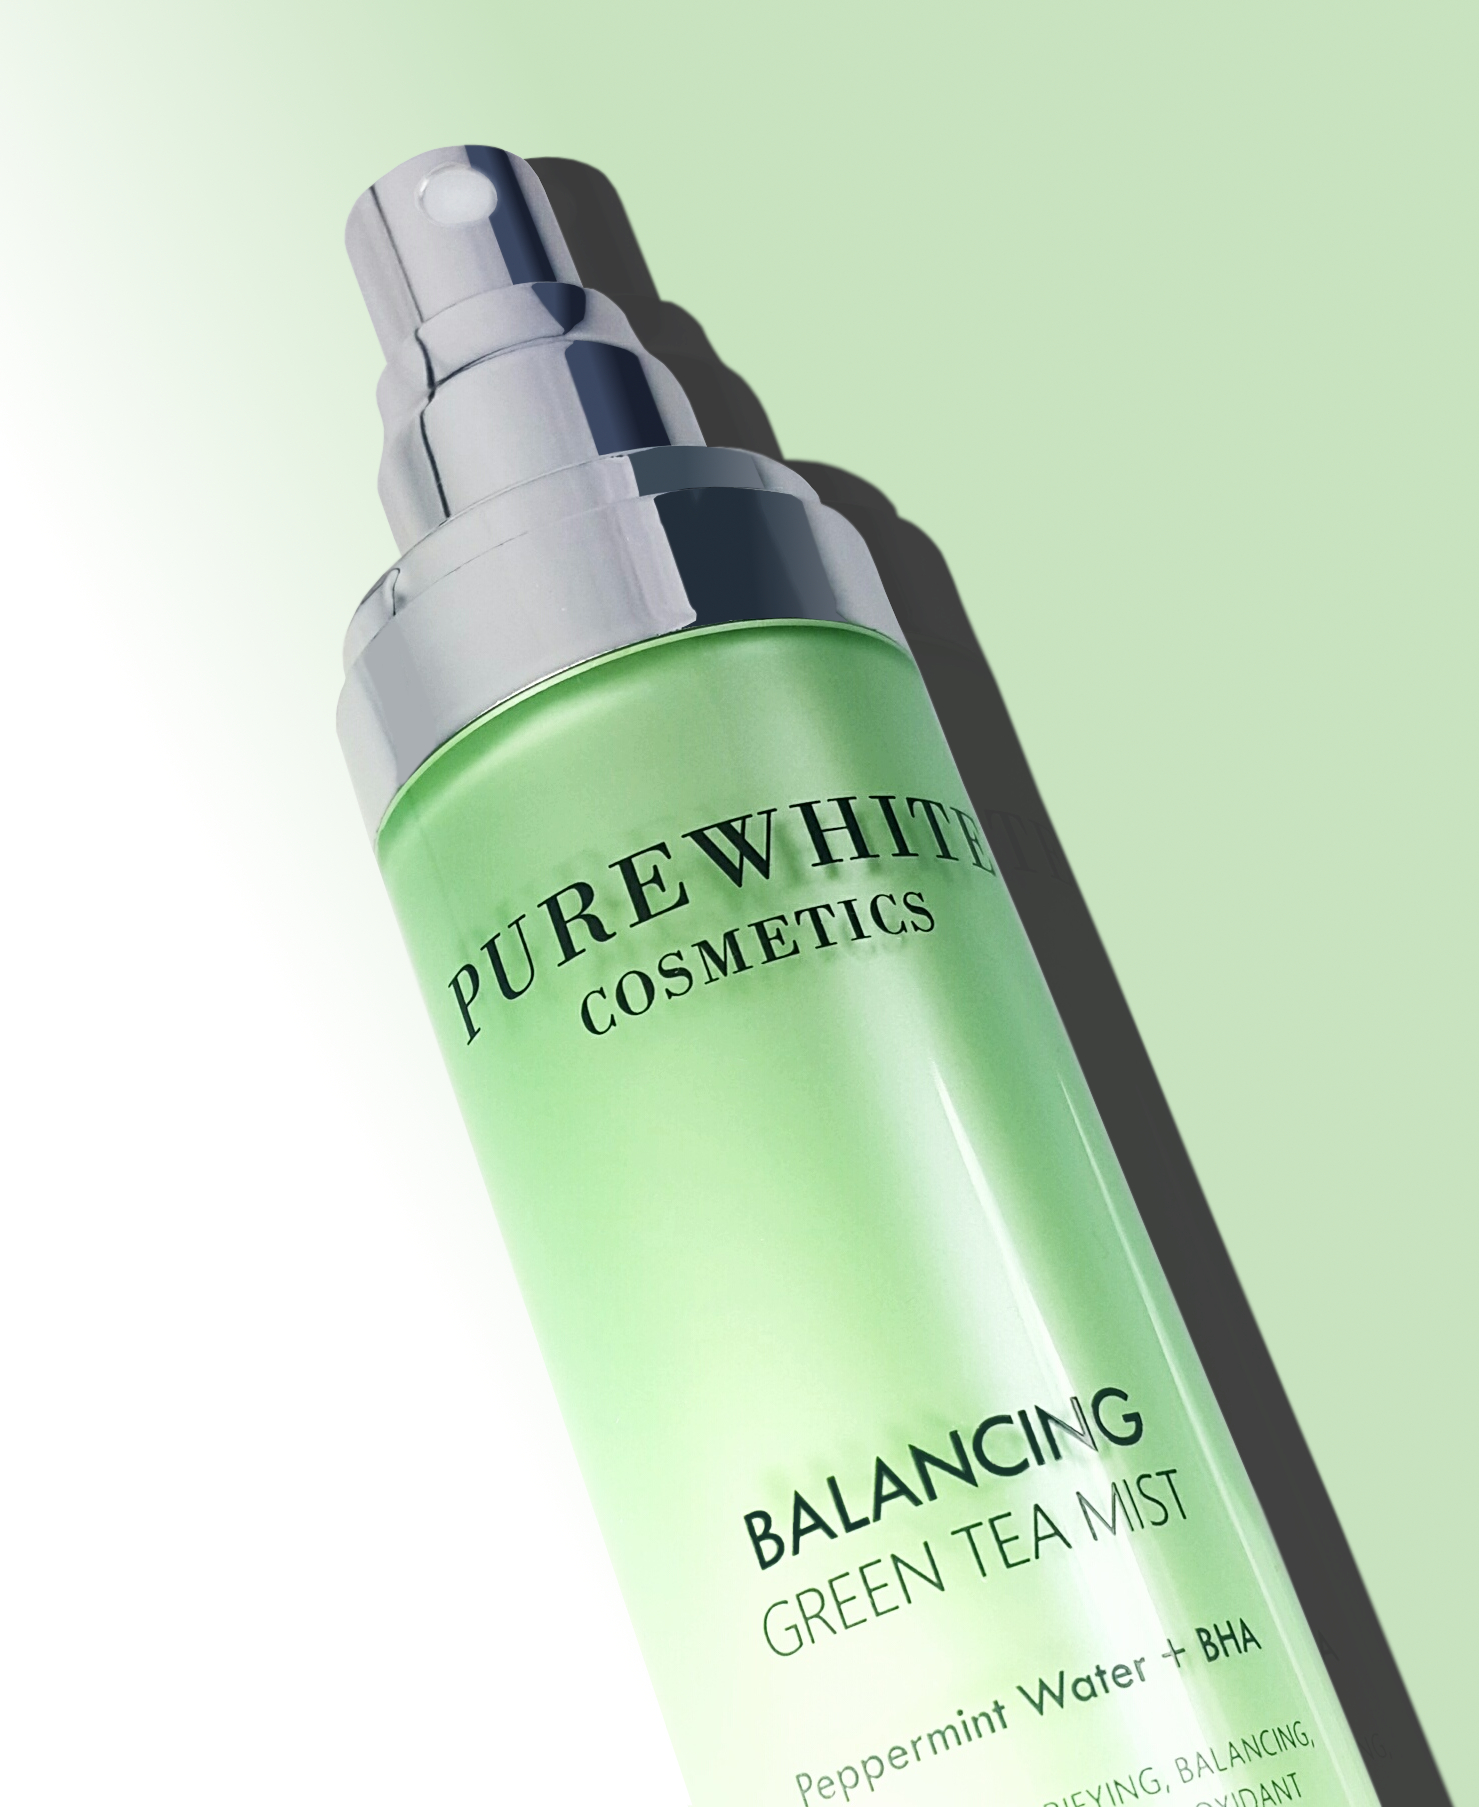 Pure White Cosmetics – Balancing Green Tea Mist